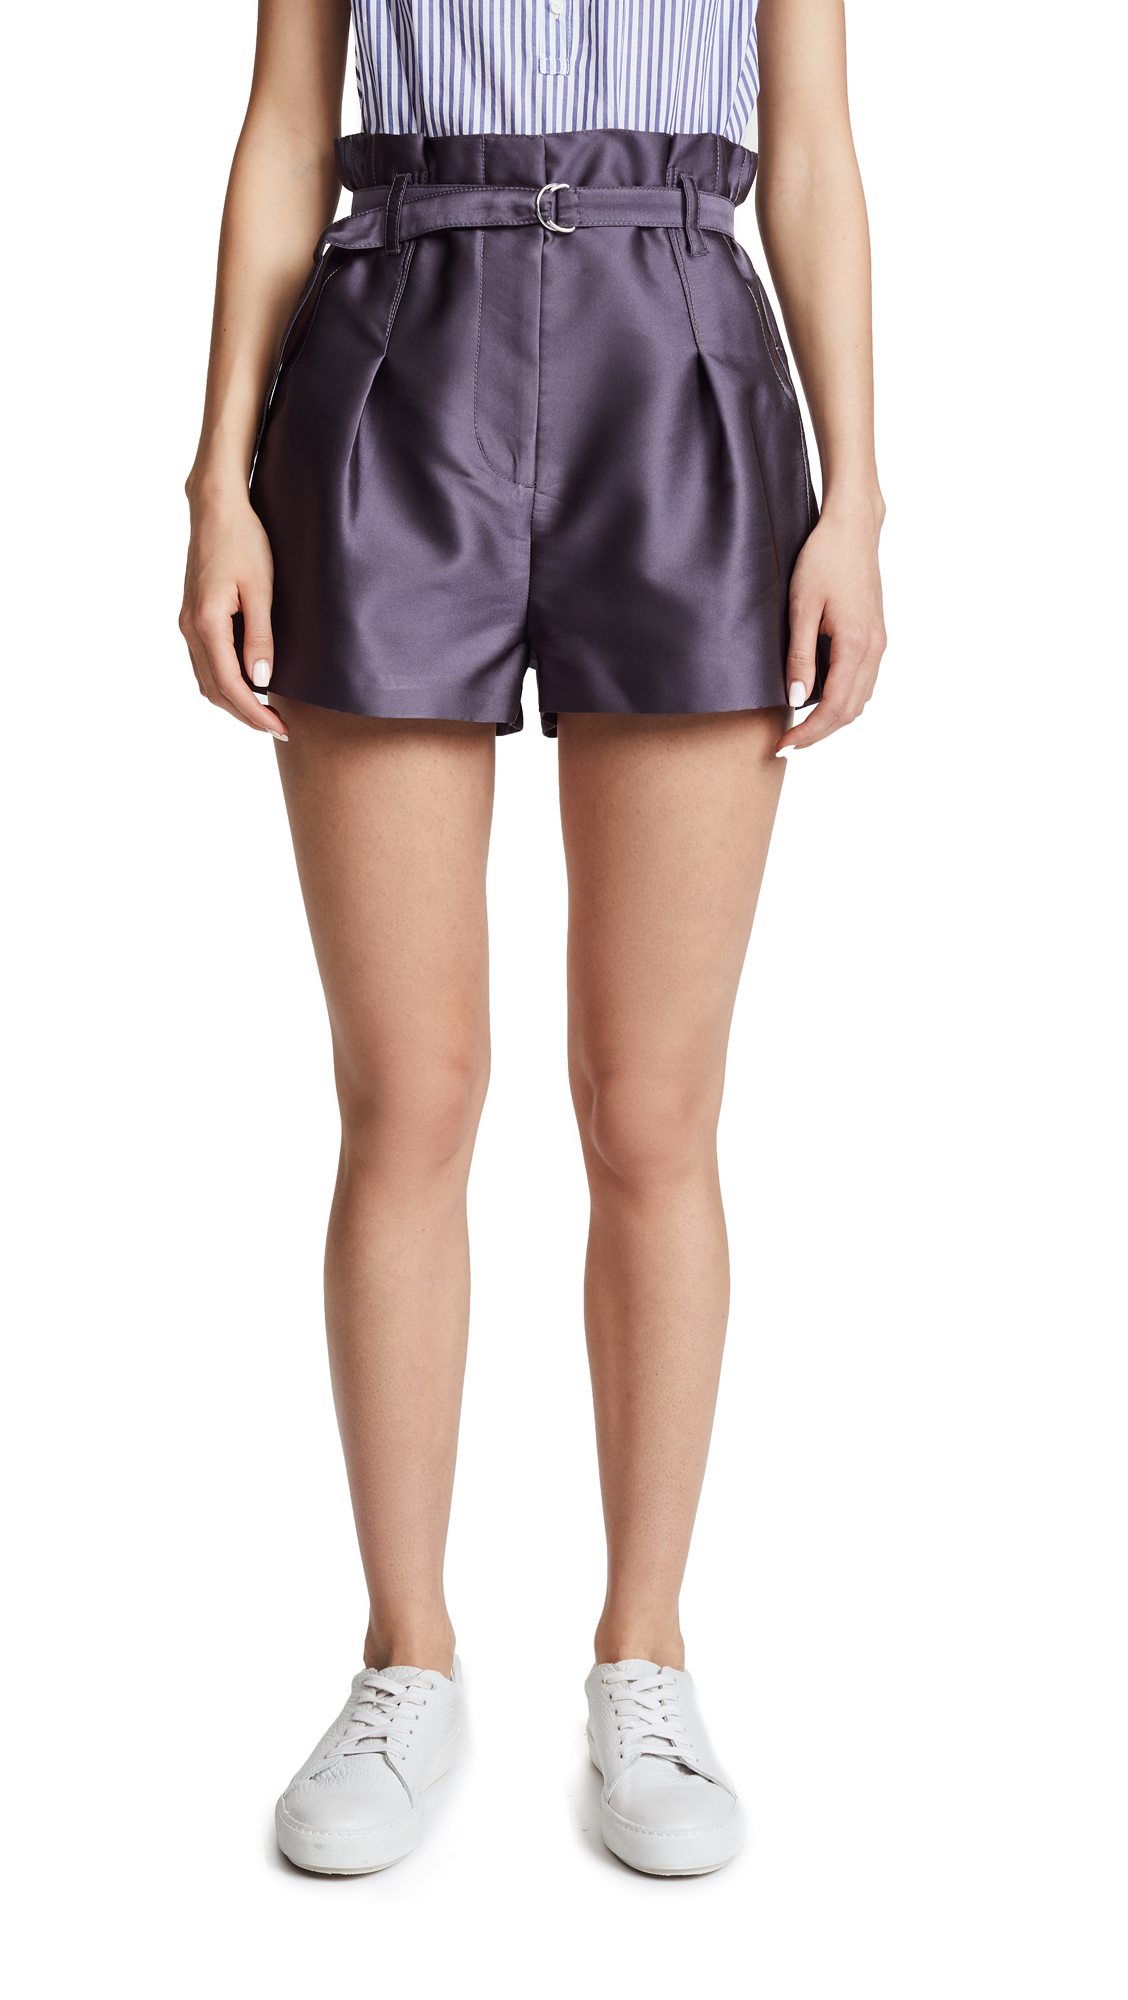 3.1 Phillip Lim Satin Origami Shorts - Dark Grey